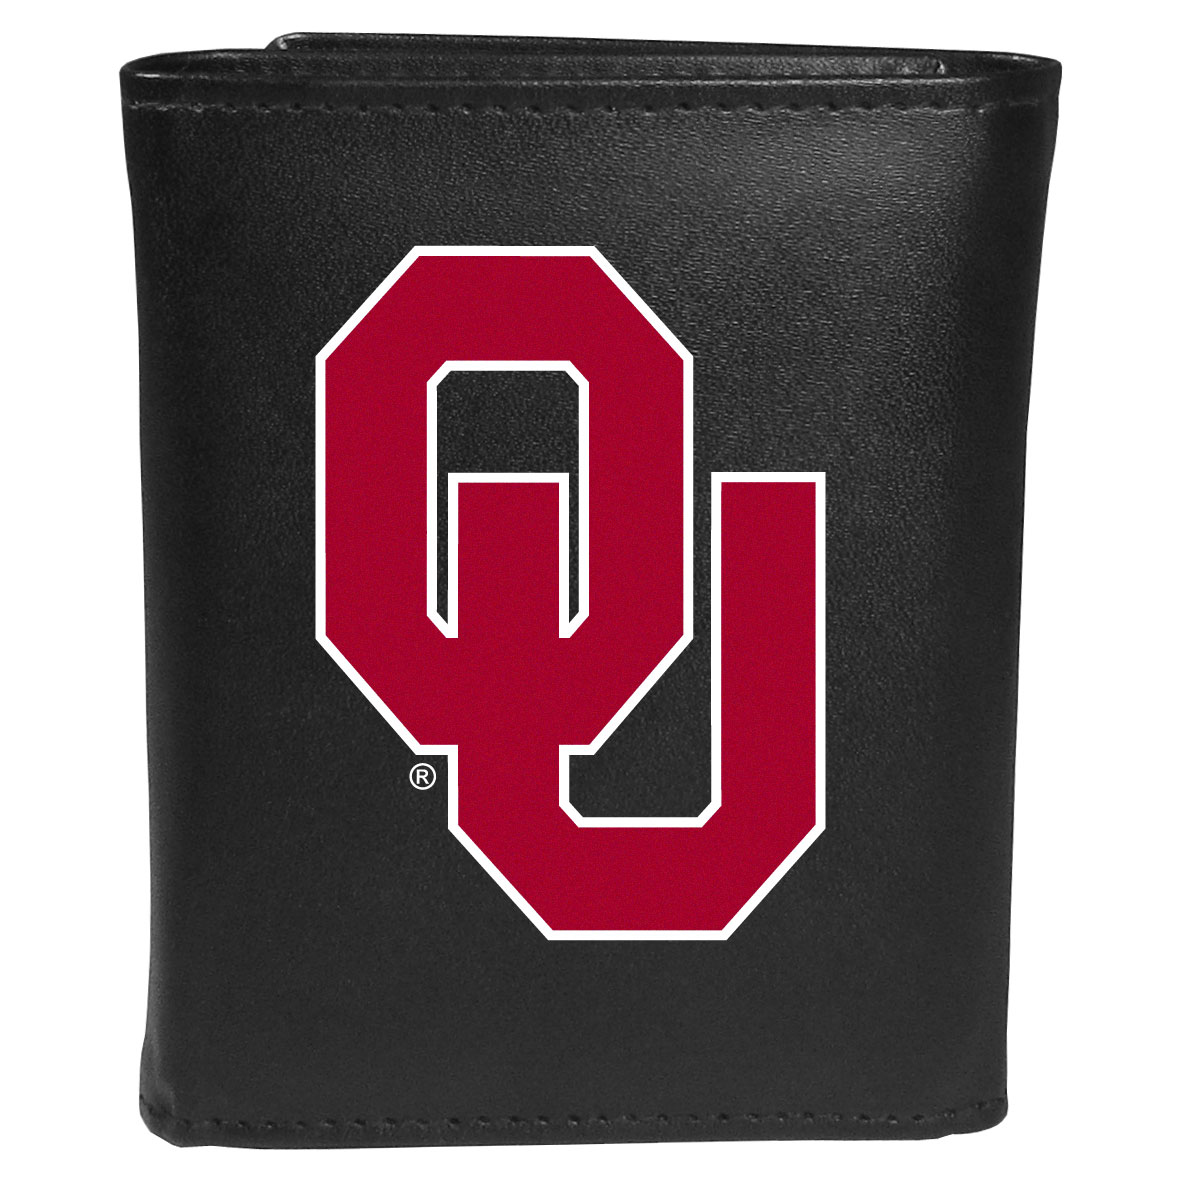 Oklahoma Sooners Leather Tri-fold Wallet, Large Logo - Our classic fine leather tri-fold wallet is meticulously crafted with genuine leather that will age beautifully so you will have a quality wallet for years to come. This is fan apparel at its finest. The wallet is packed with organizational  features; lots of credit card slots, large billfold pocket, and a window ID slot. The front of the wallet features an extra large Oklahoma Sooners printed logo.